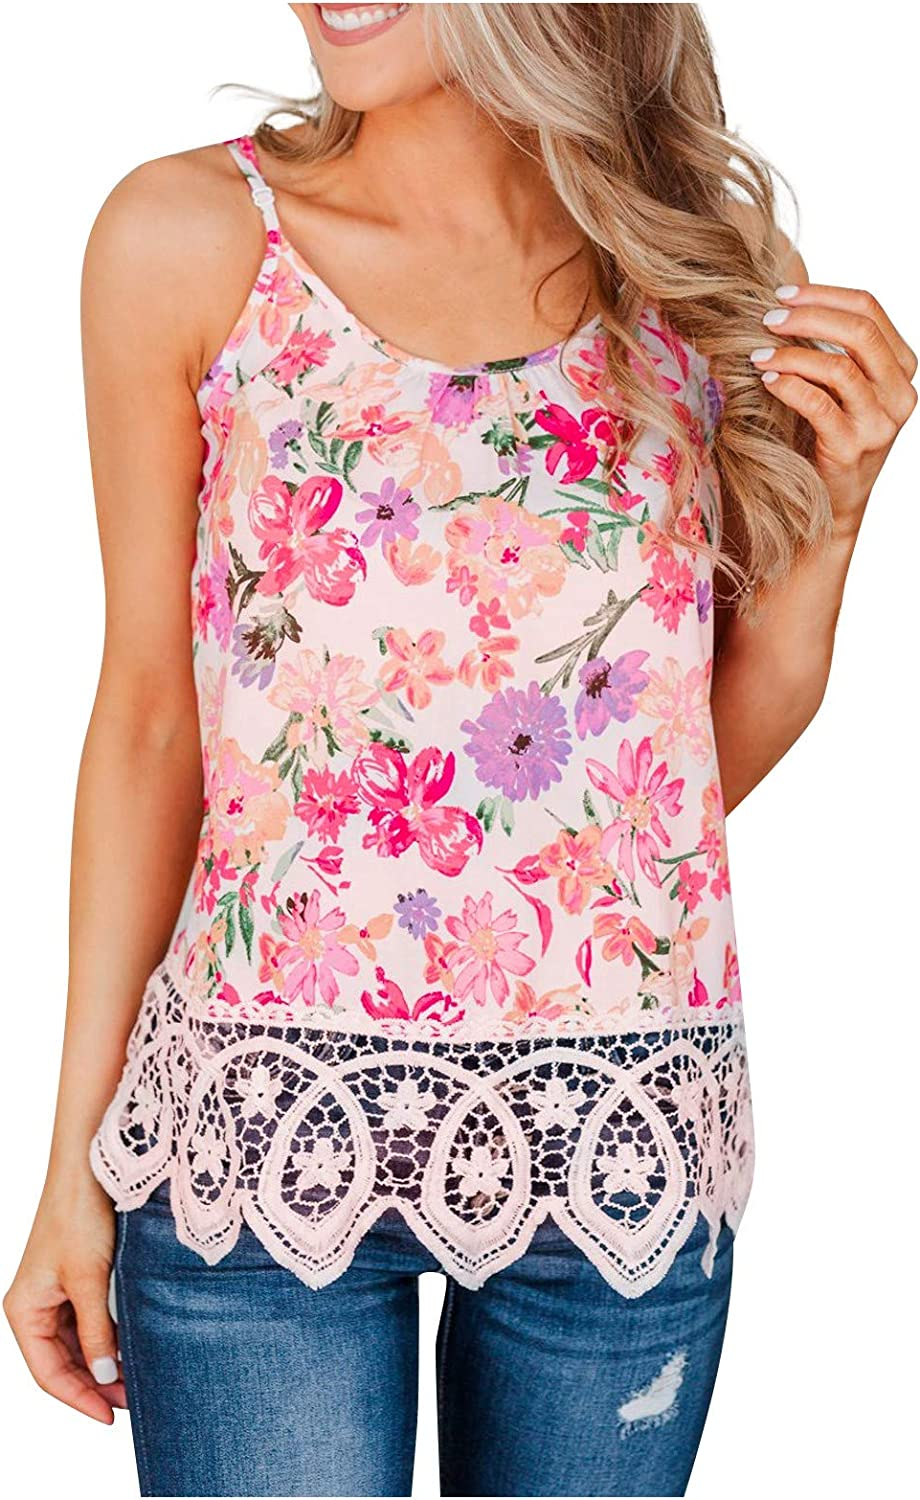 Womens Max 55% OFF Summer Floral Print Tank Tops Sleev Neck O Lace Patchwork 2021